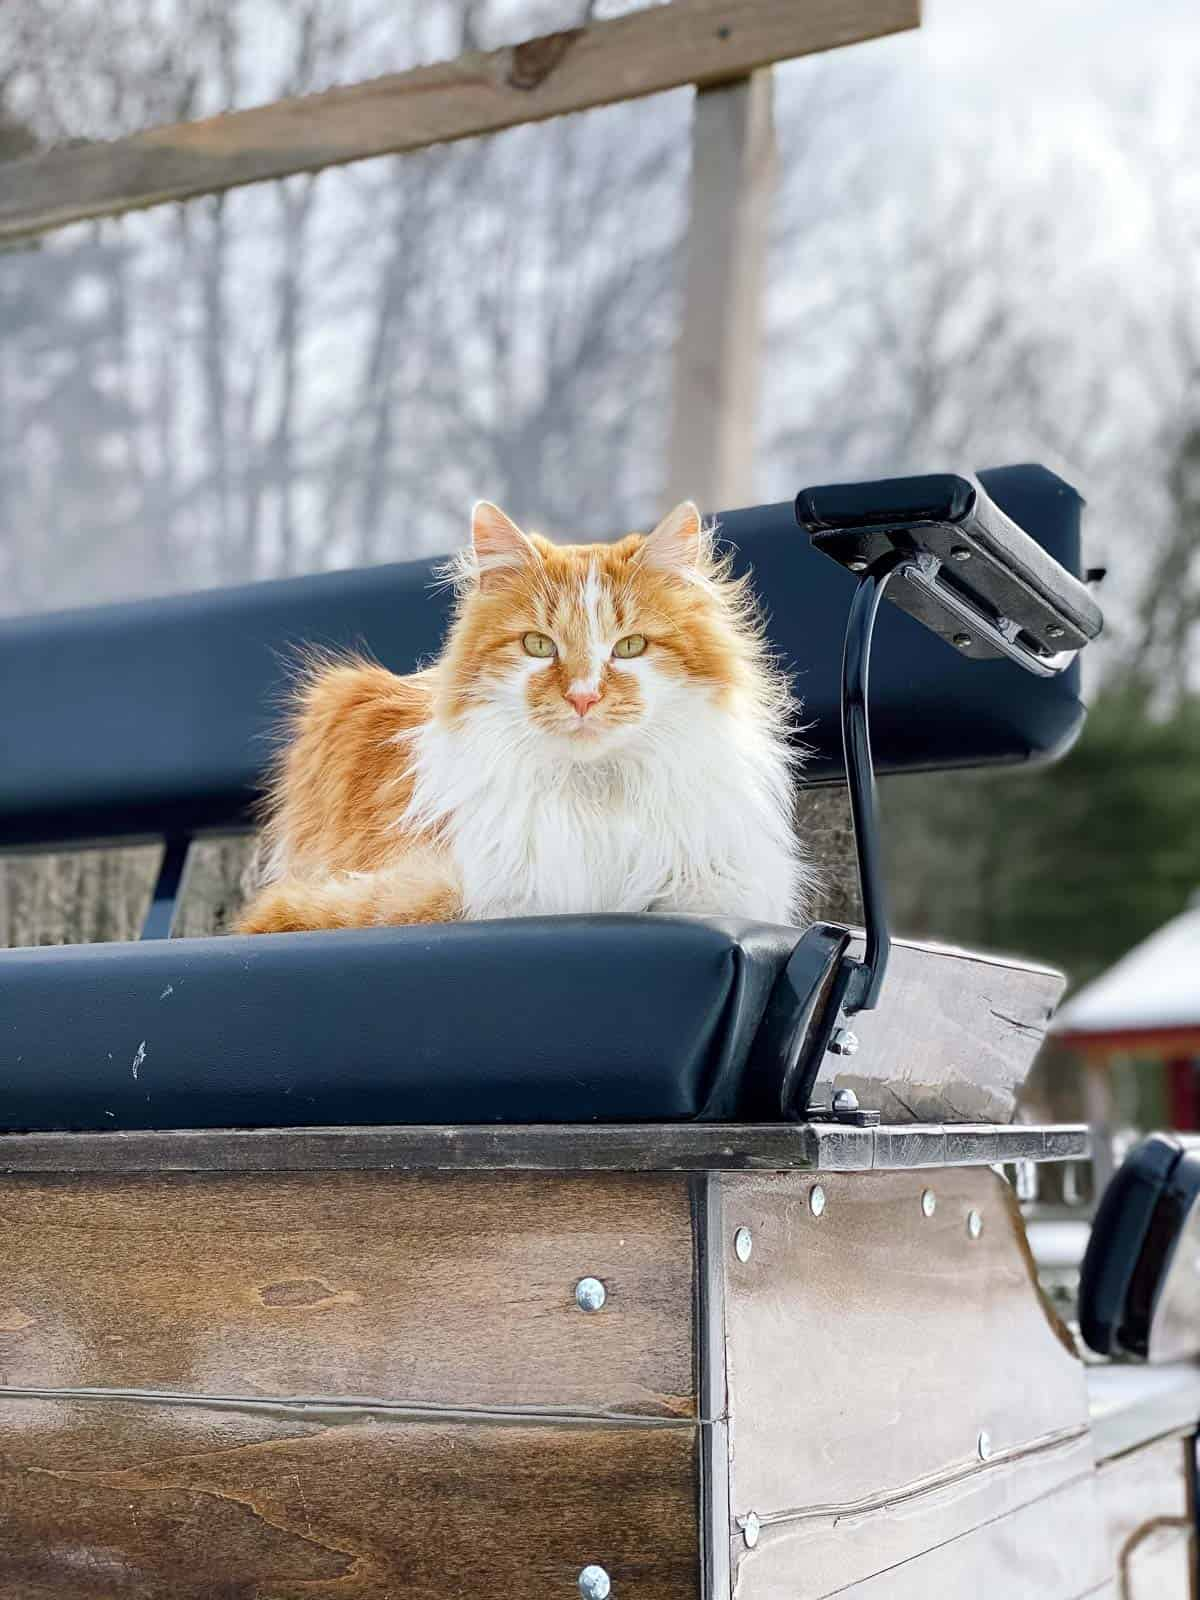 orange and white fluffy cat sitting on a carriage bench